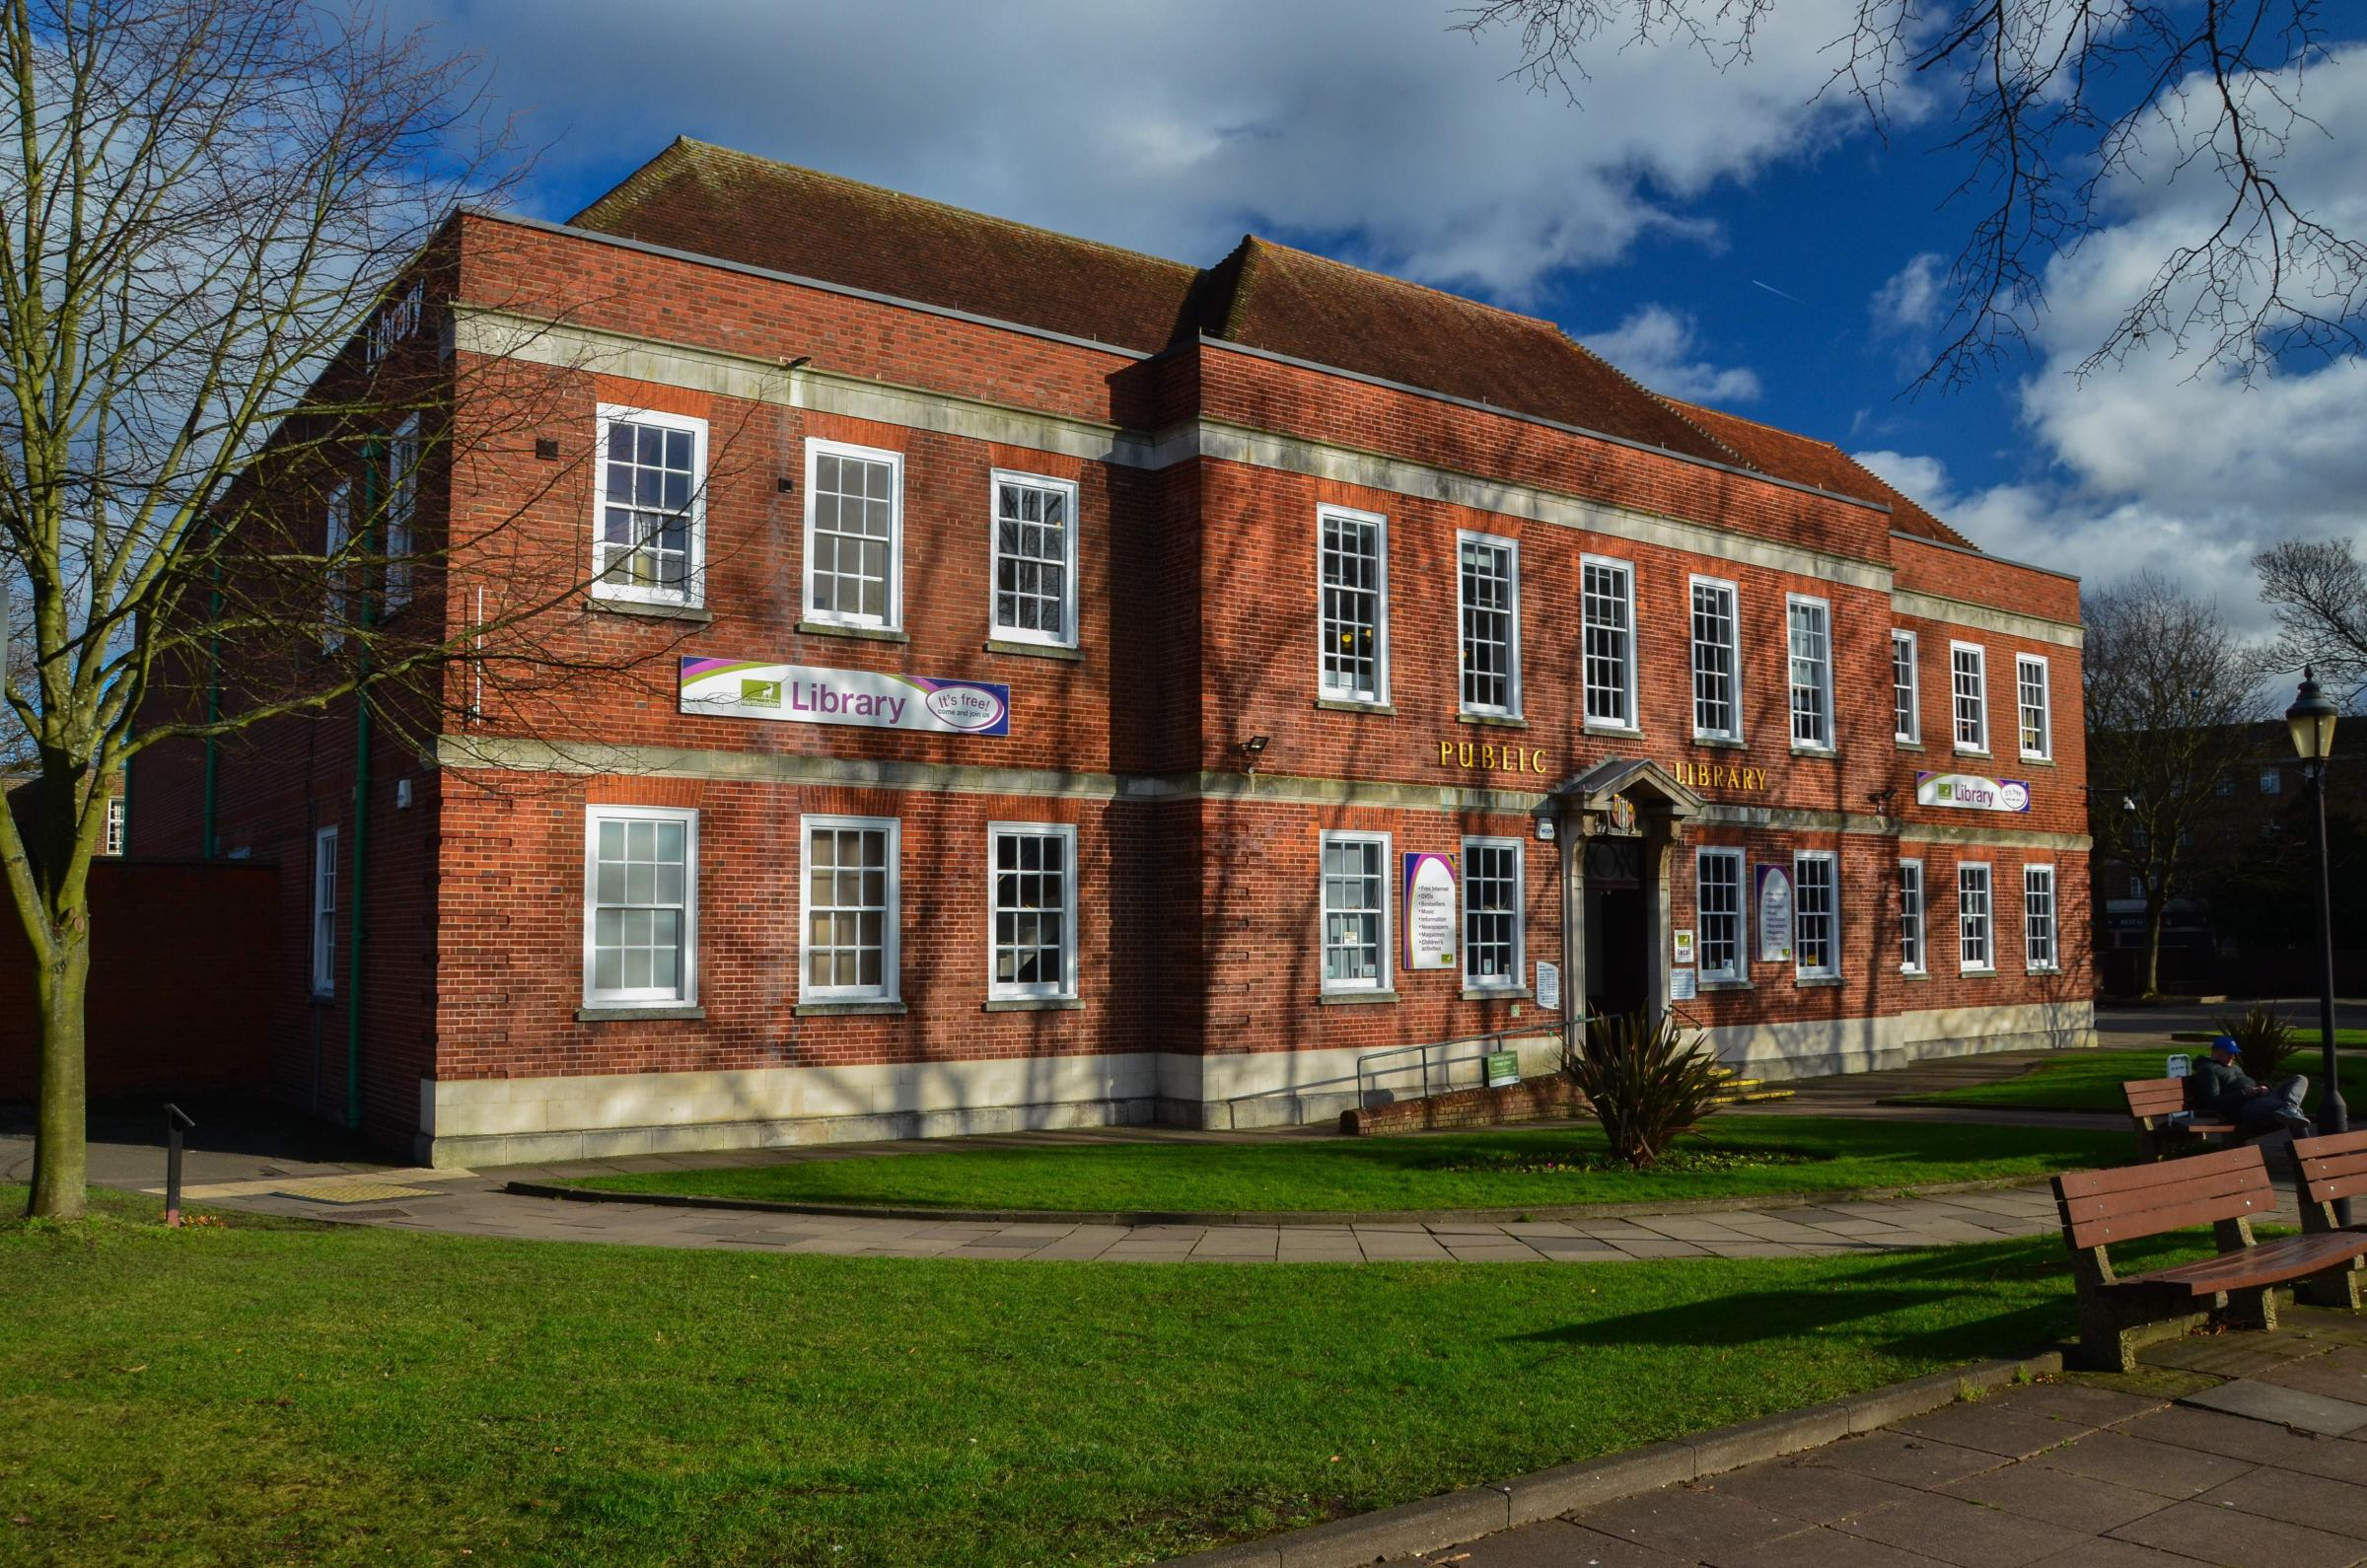 Watford's Public Library has been listed